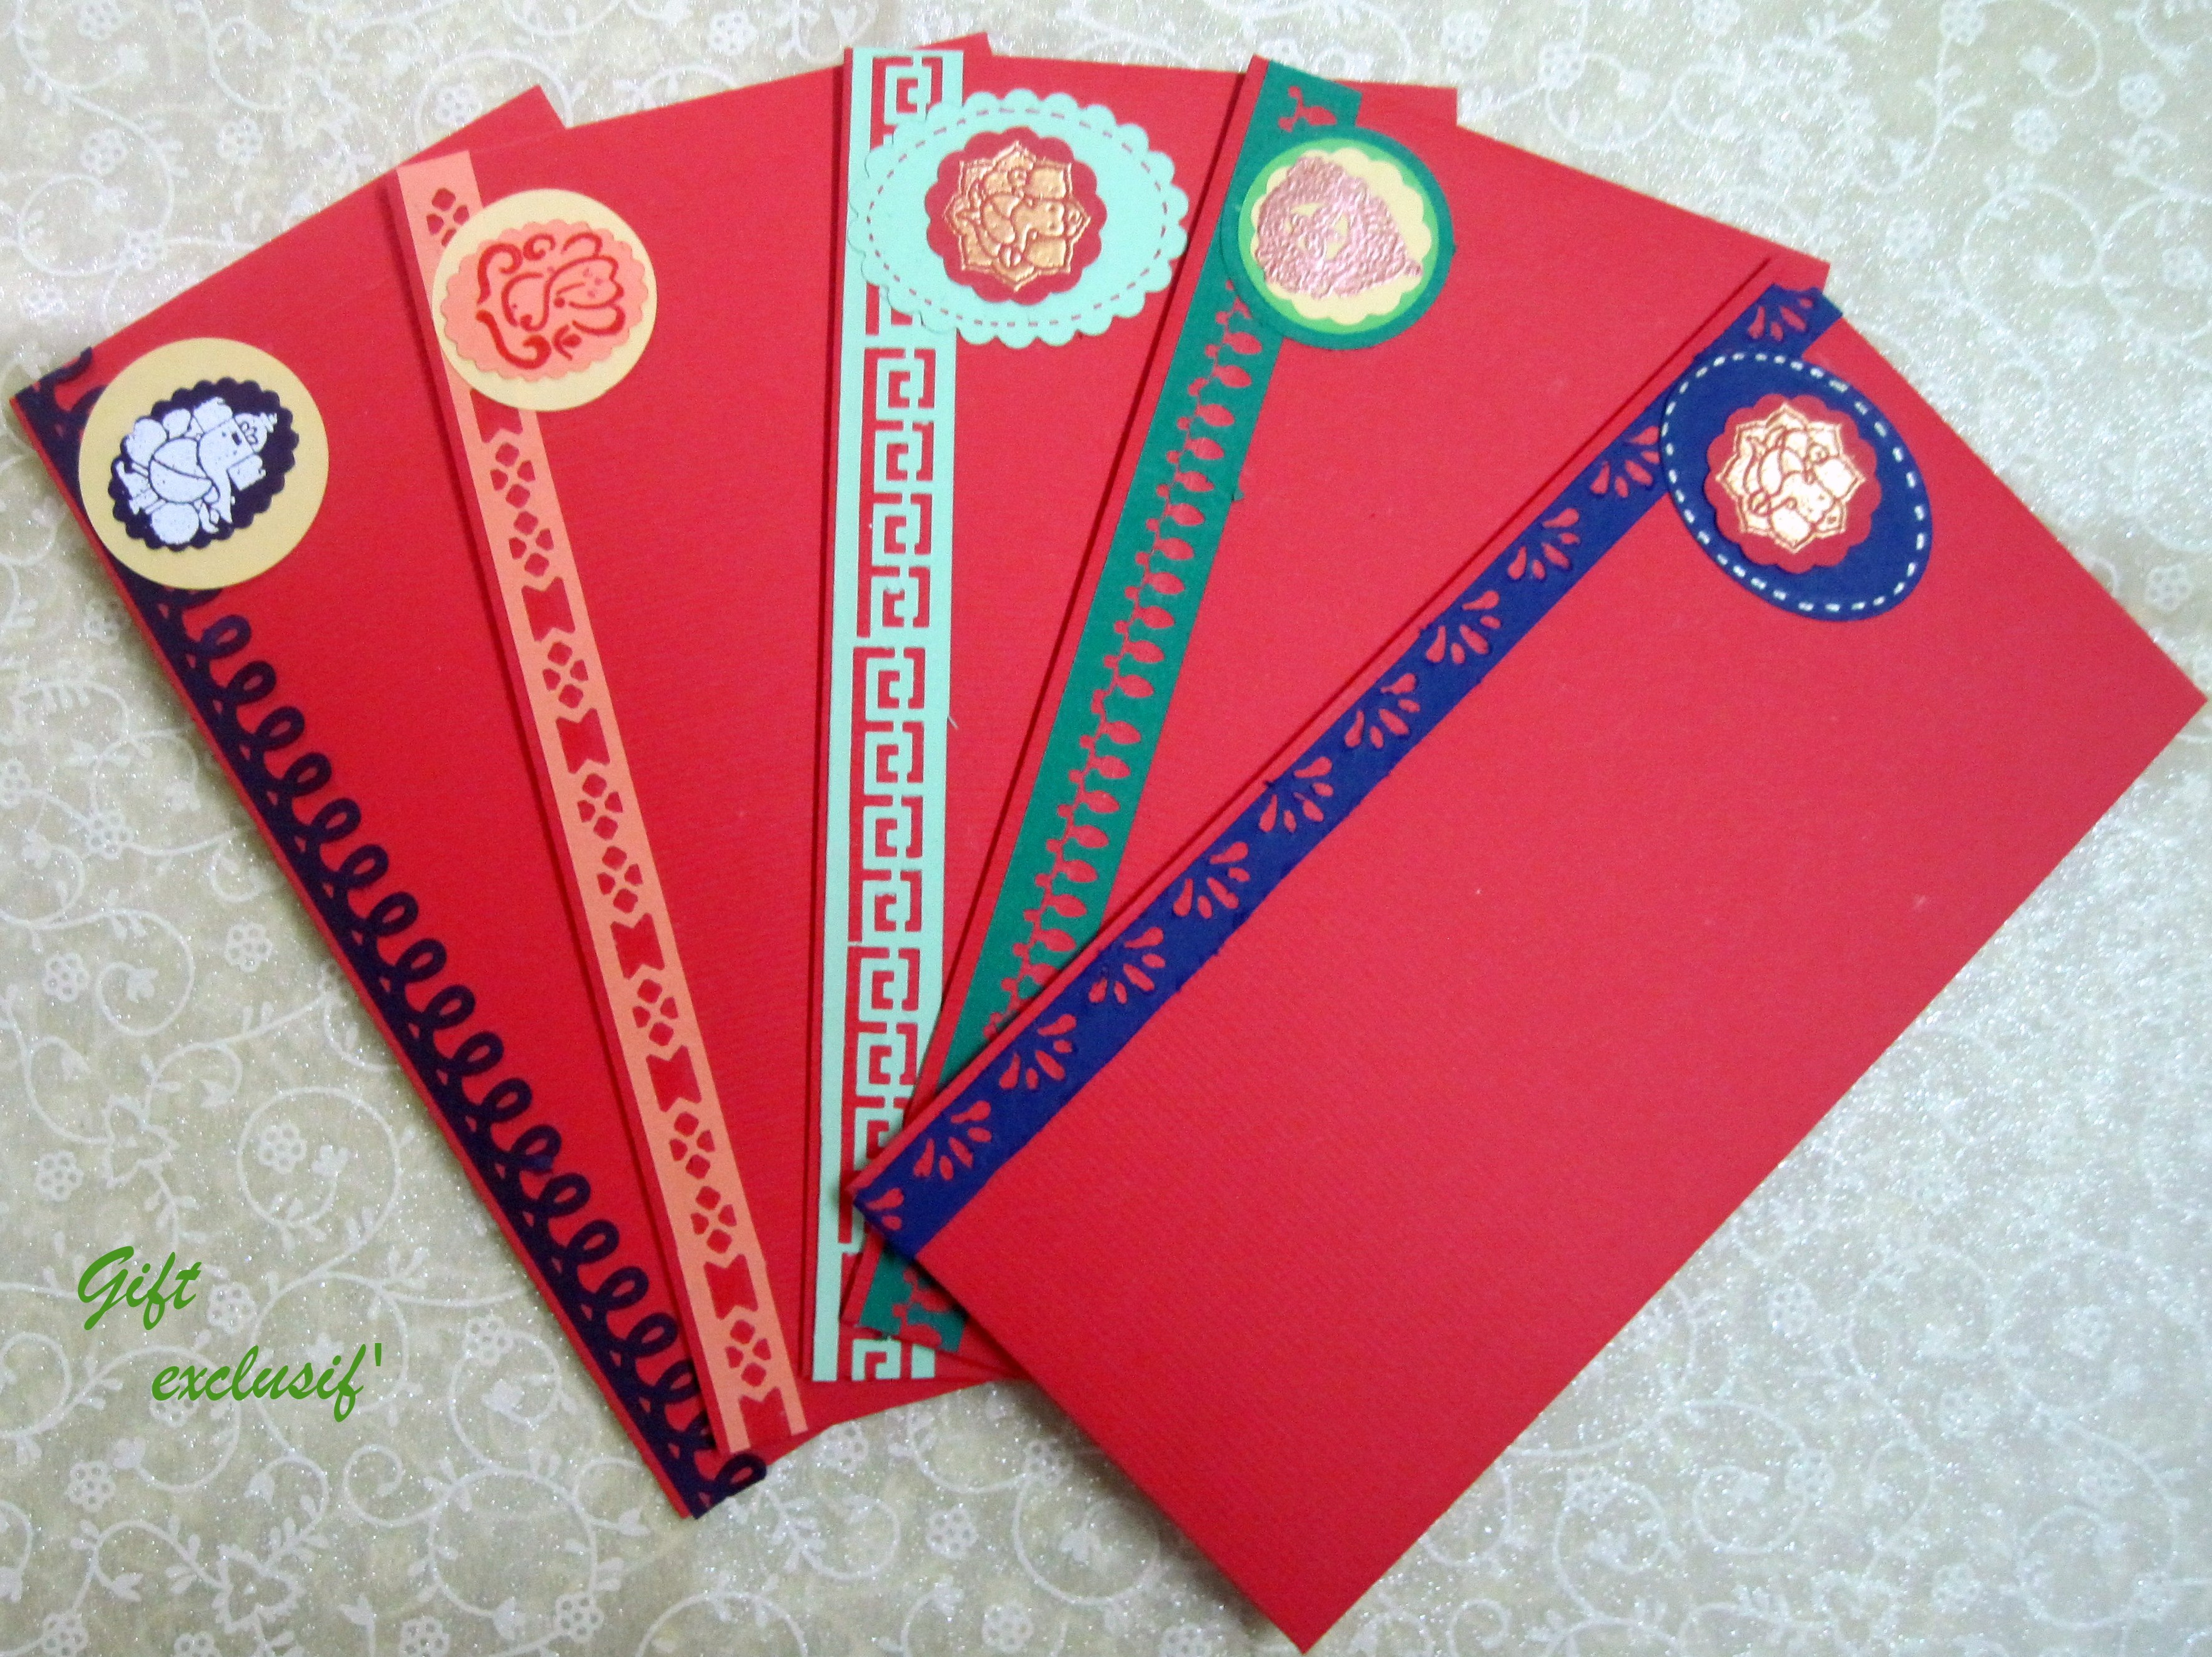 wedding/shagun money envelopes - Online Shopping for Wedding by Gift ...